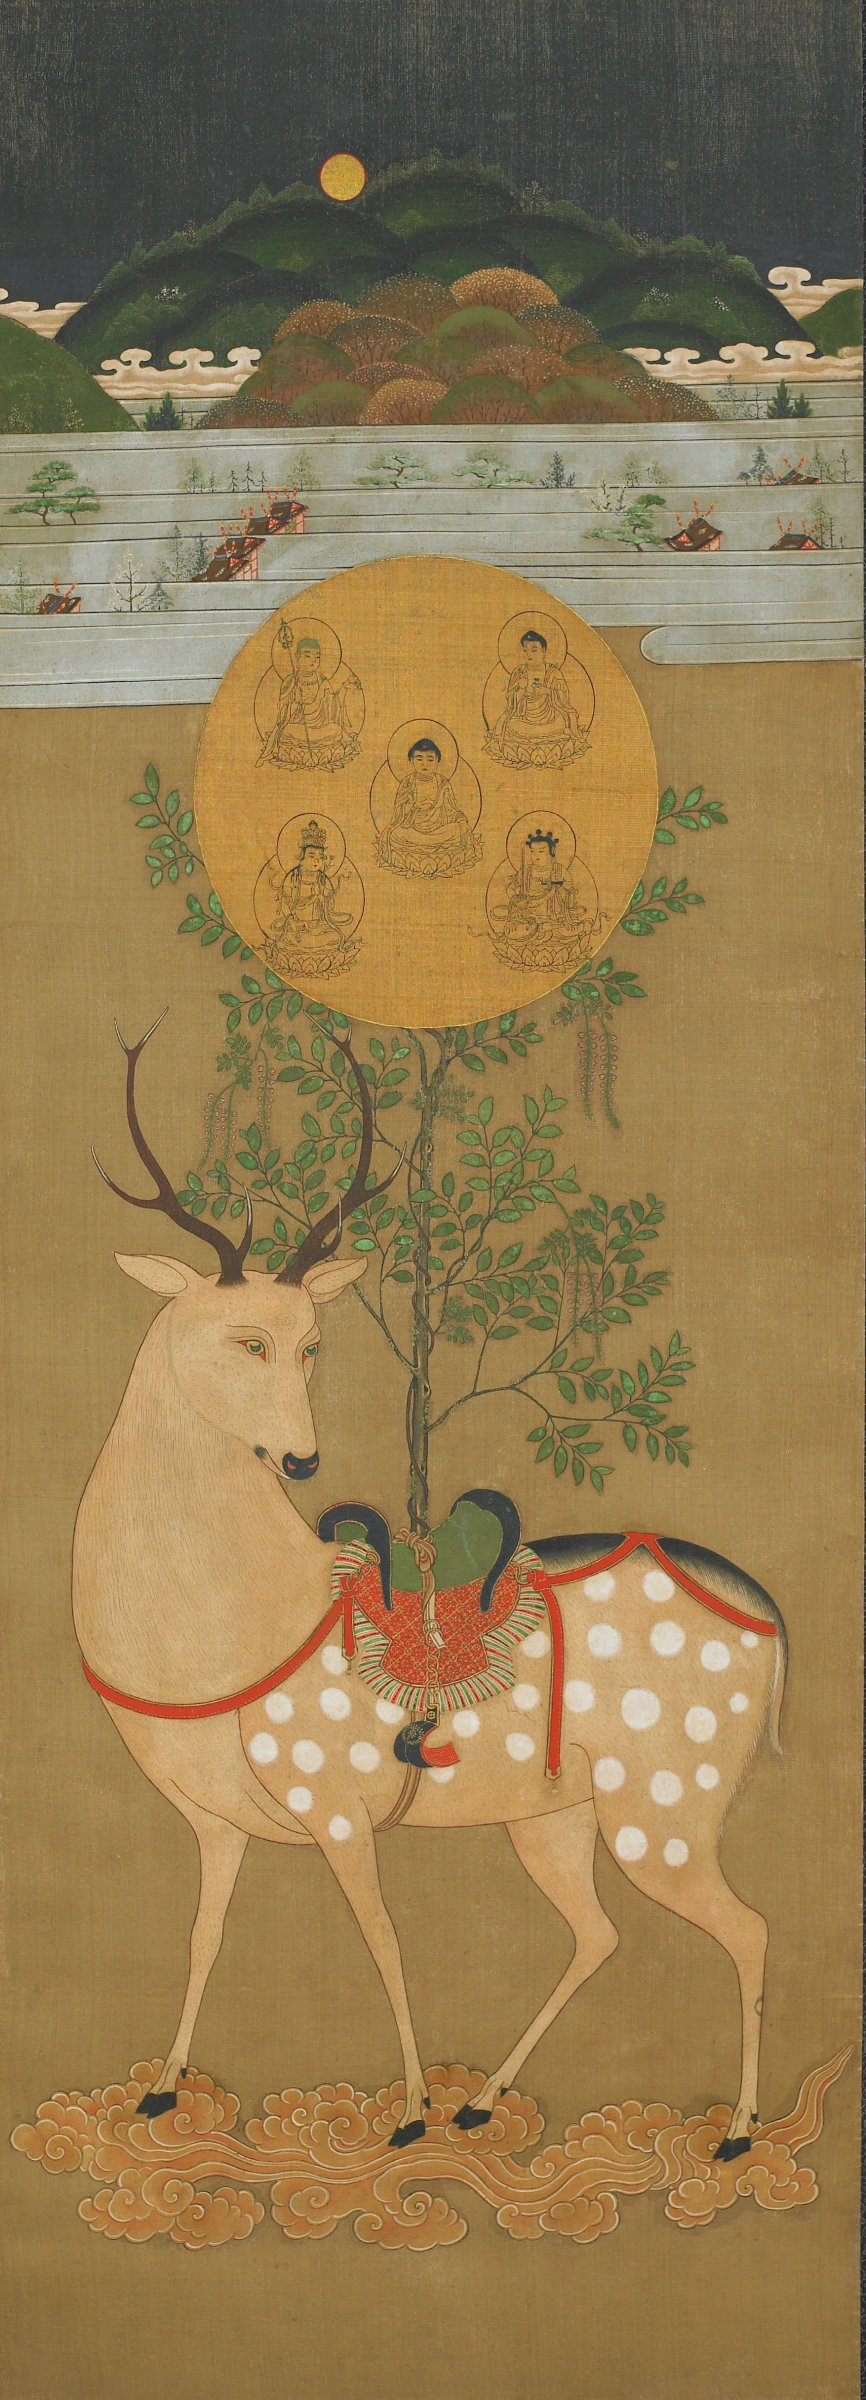 A hanging scroll depicting a deer standing with a mirror on the saddle on its back. The mirror holds the images of five Buddhist deities. In the background is the Kasuga shrine in Nara. The deer is the symbol of the Shinto gods who live there.